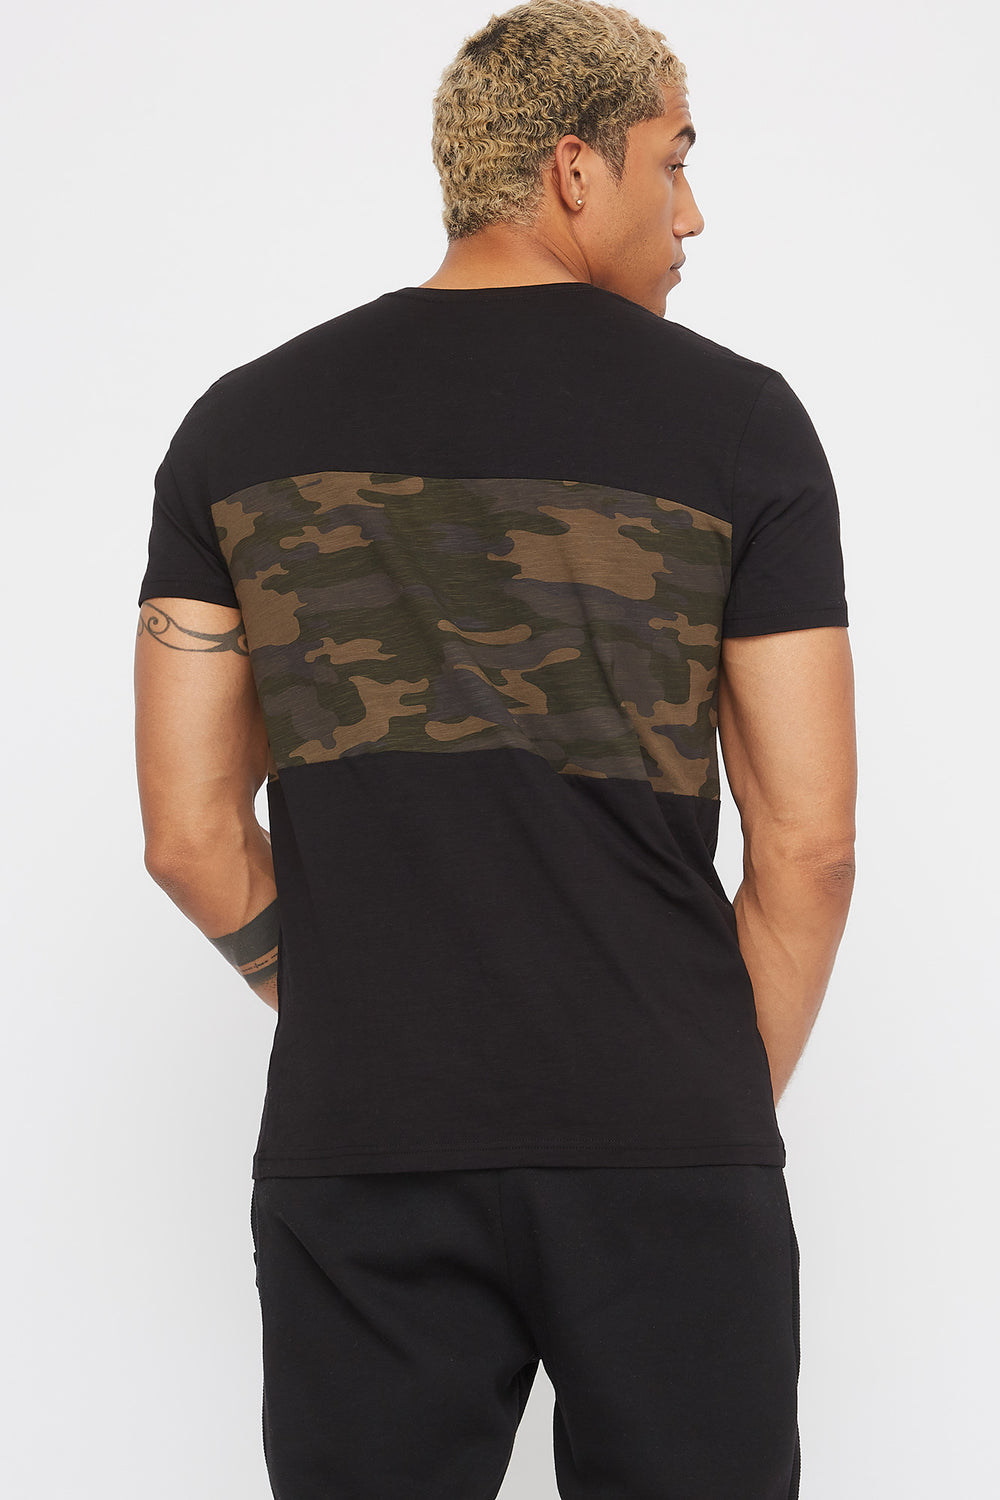 Colour Block Camo T-Shirt Black